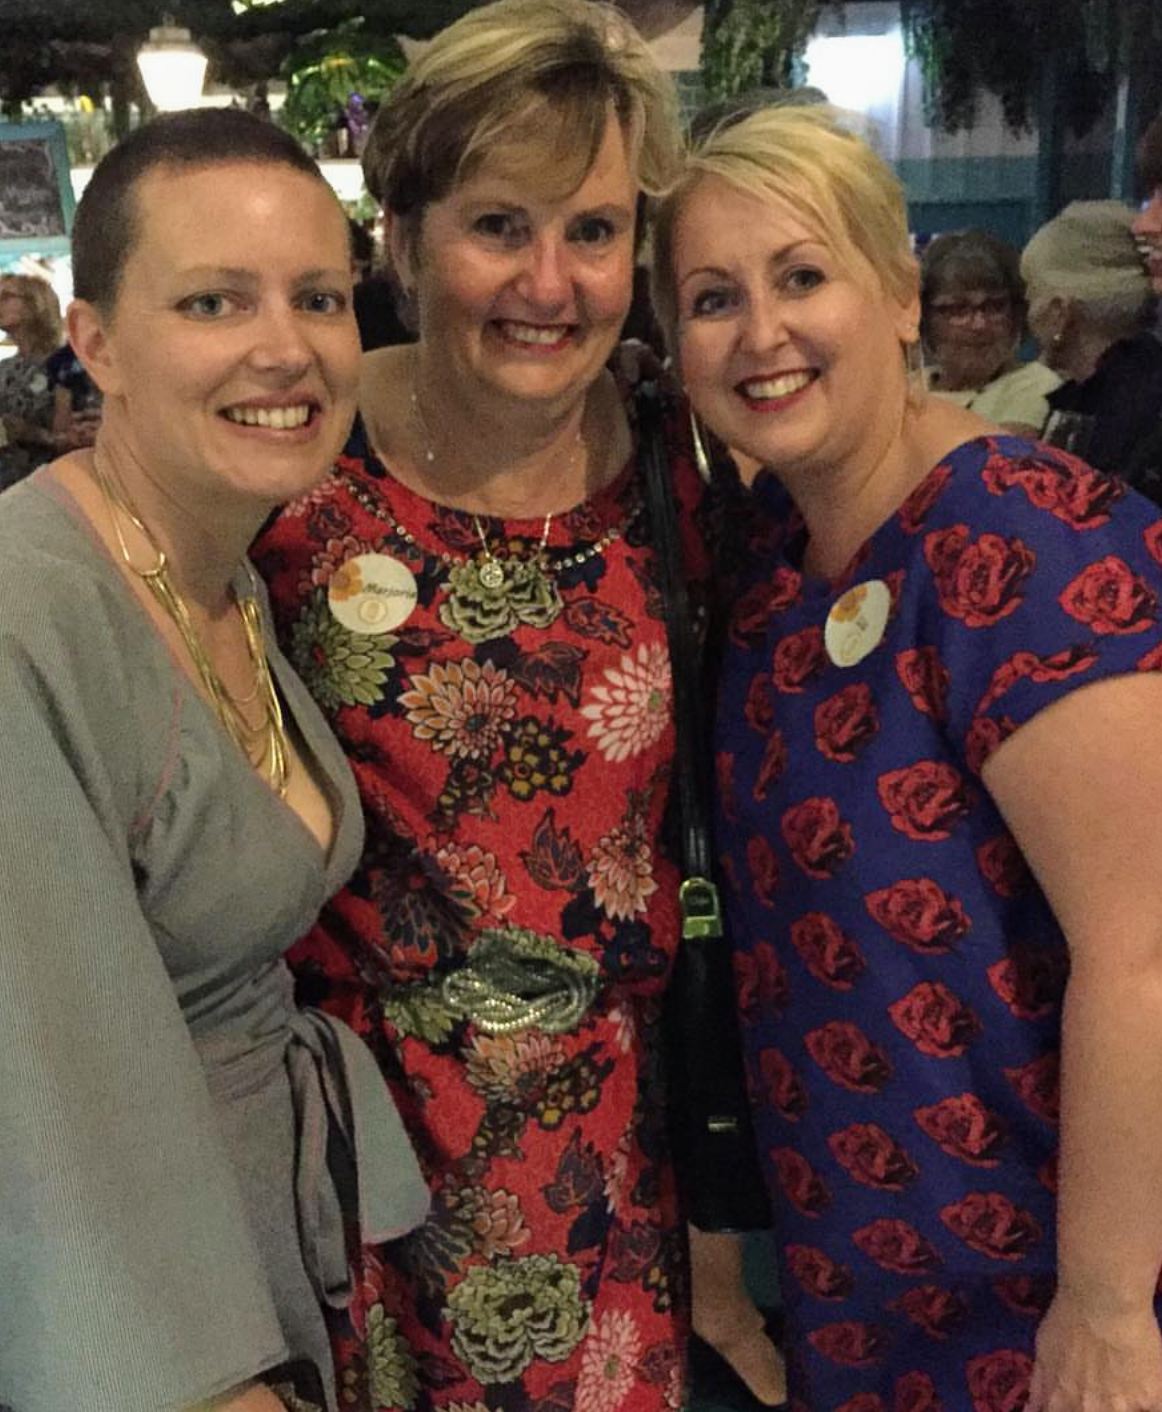 Having a Frocktail moment with Jen from @the_stitcher_and_gatherer & Liz from @_busylizzie